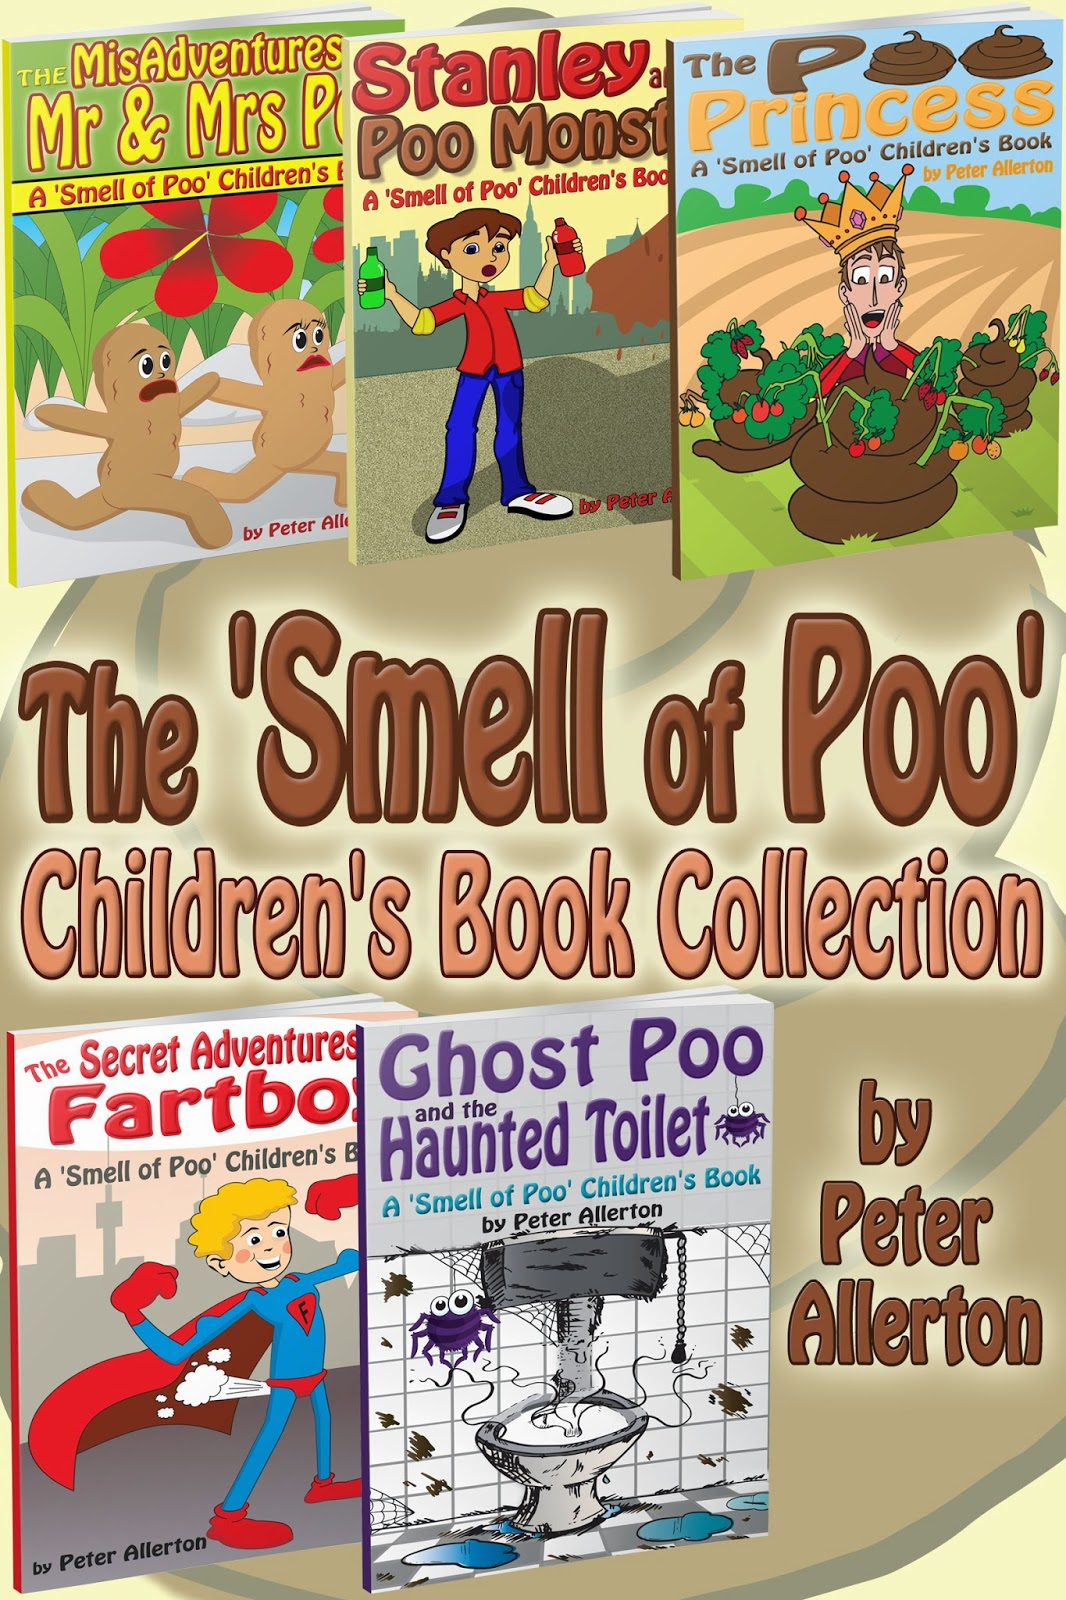 humorous kids' book